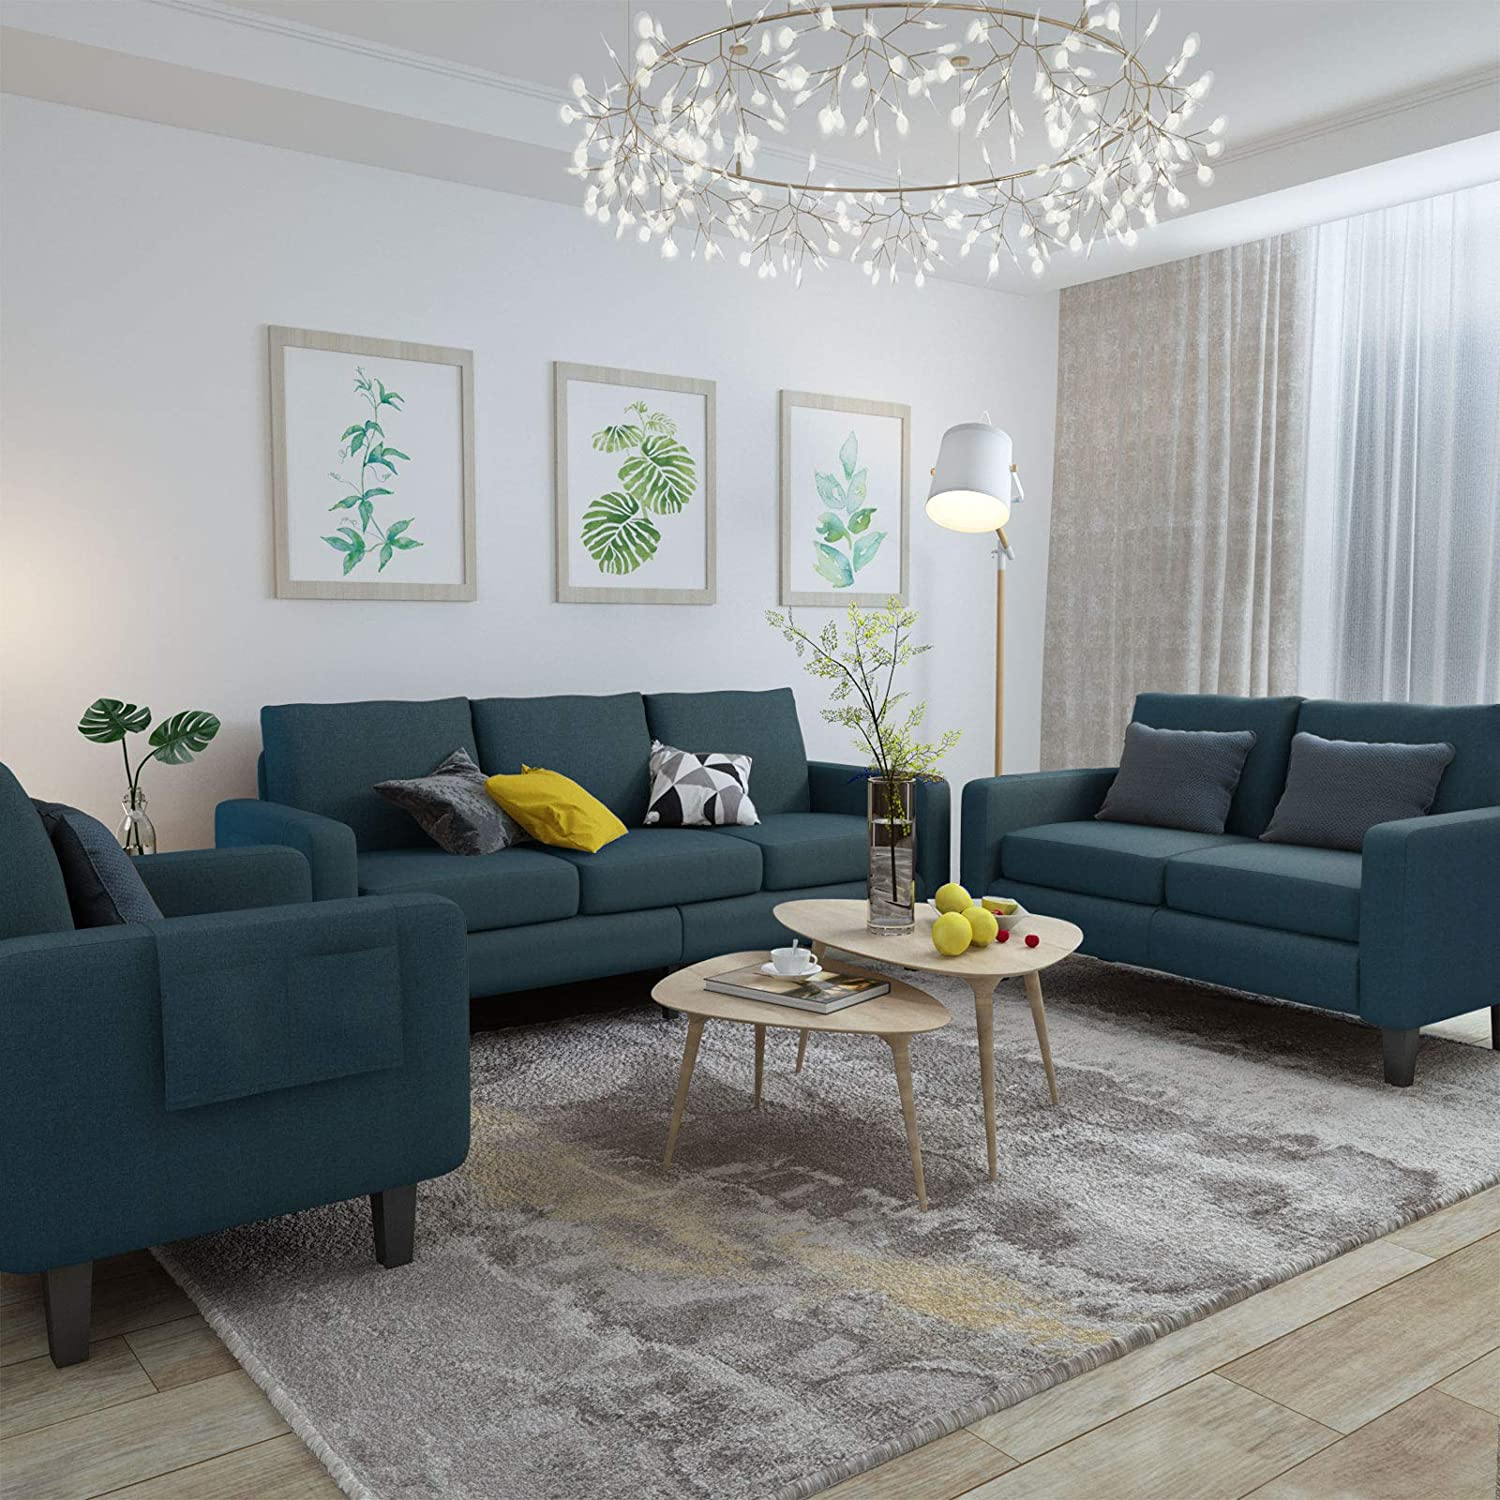 Best for Budget-Friendly: Mecor 3 Piece 7 Seat Sofa Under the Budget.